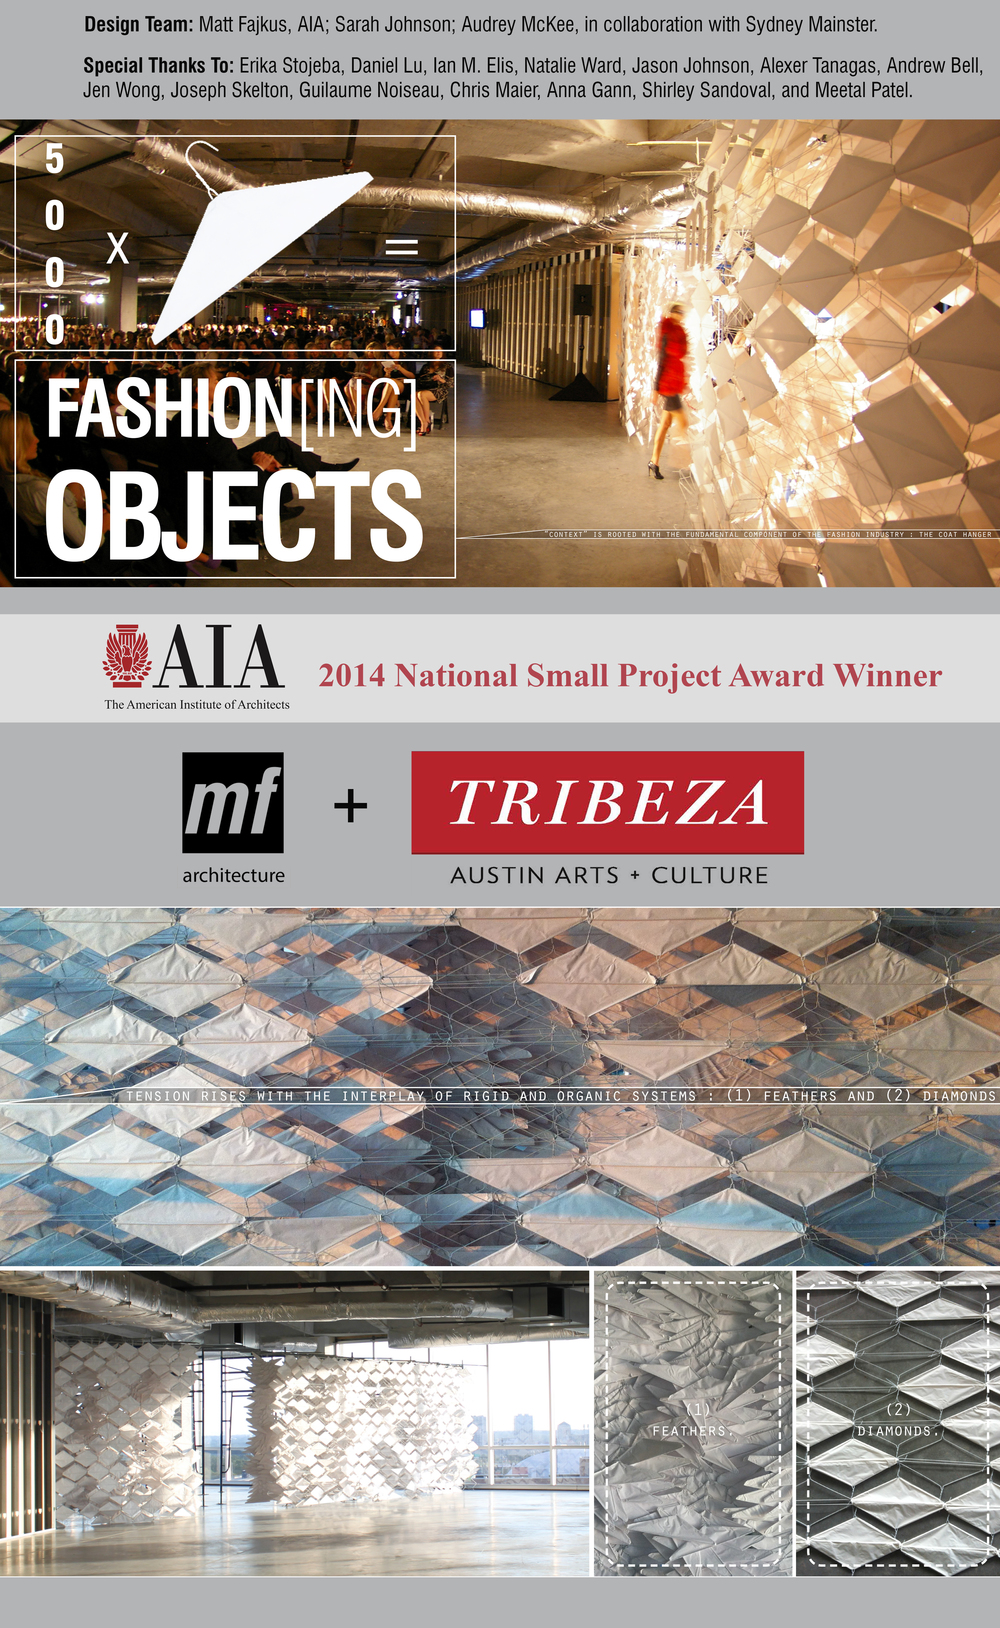 2014_0213 Matt Fajkus MF Architecture Fashioning Objects AIA Small Project Award.jpg